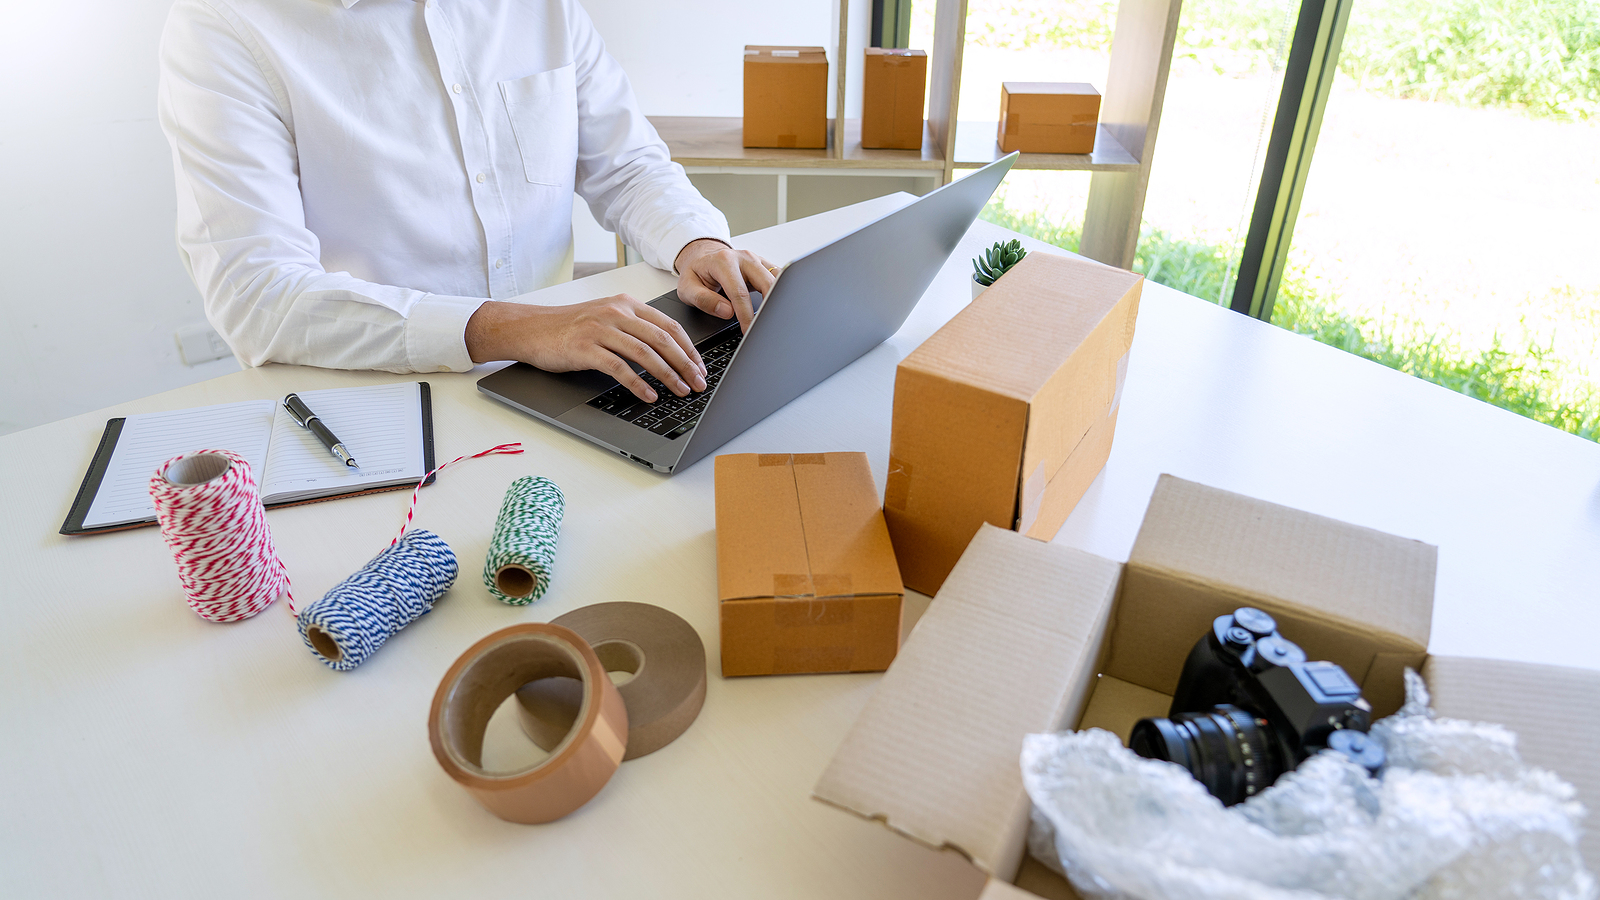 7 Trending Dropshipping Products for 2020